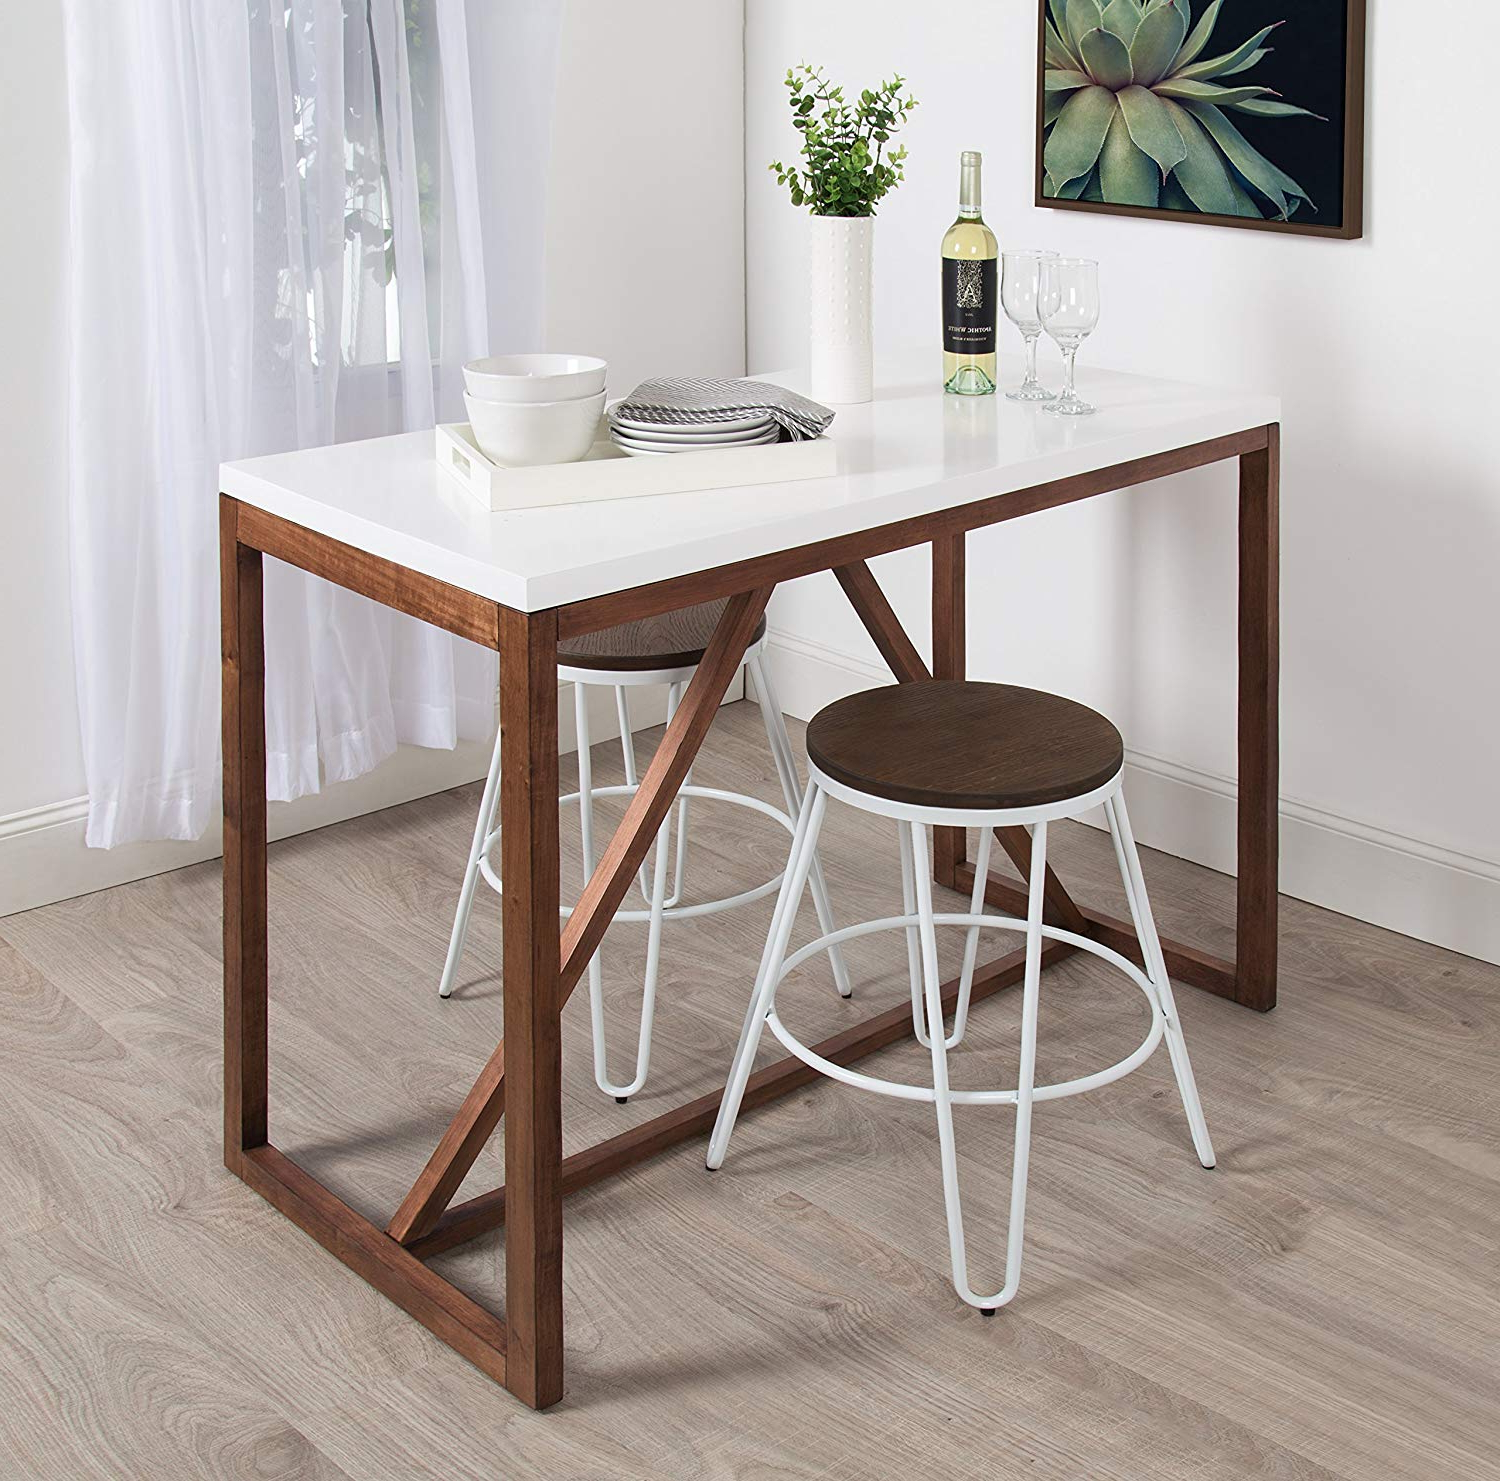 Kate And Laurel Kaya 36 Inch Tall Pub/bar Table, Two Toned Wood, White And  Modern Walnut Brown In Famous Kaya 3 Piece Dining Sets (View 5 of 20)